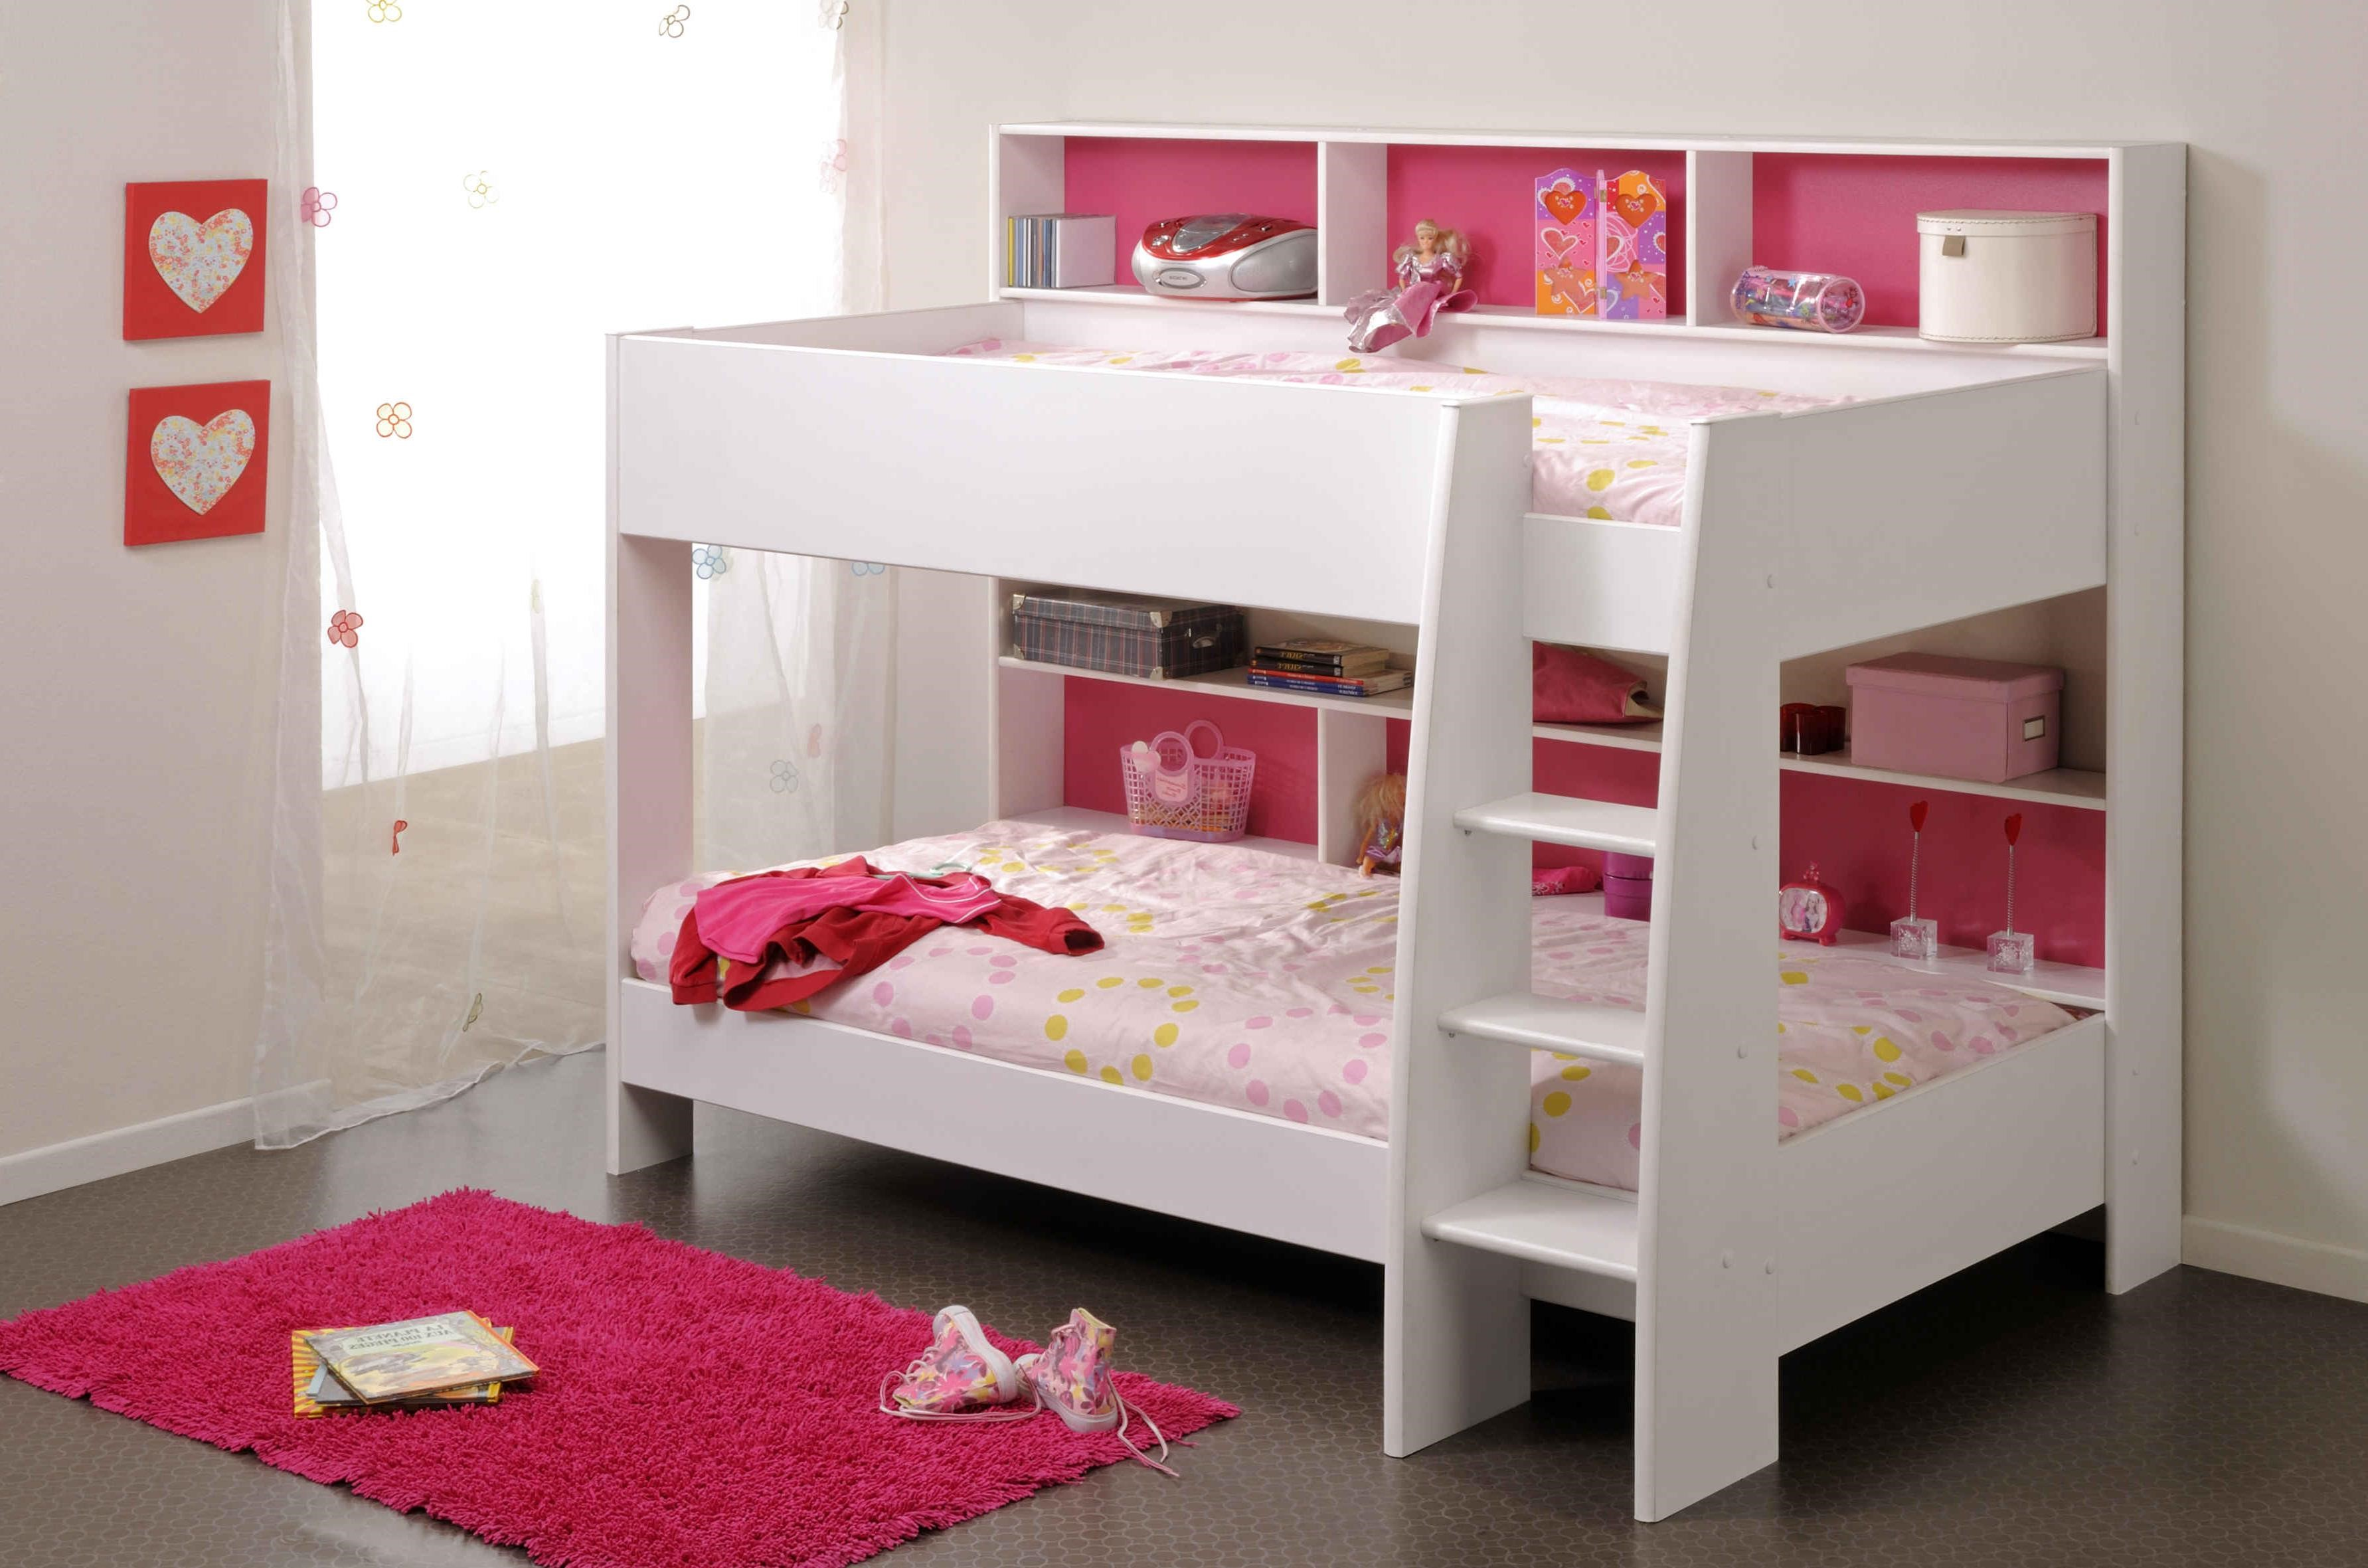 Rooms To Go Bedroom Furniture For Kids Photo   6